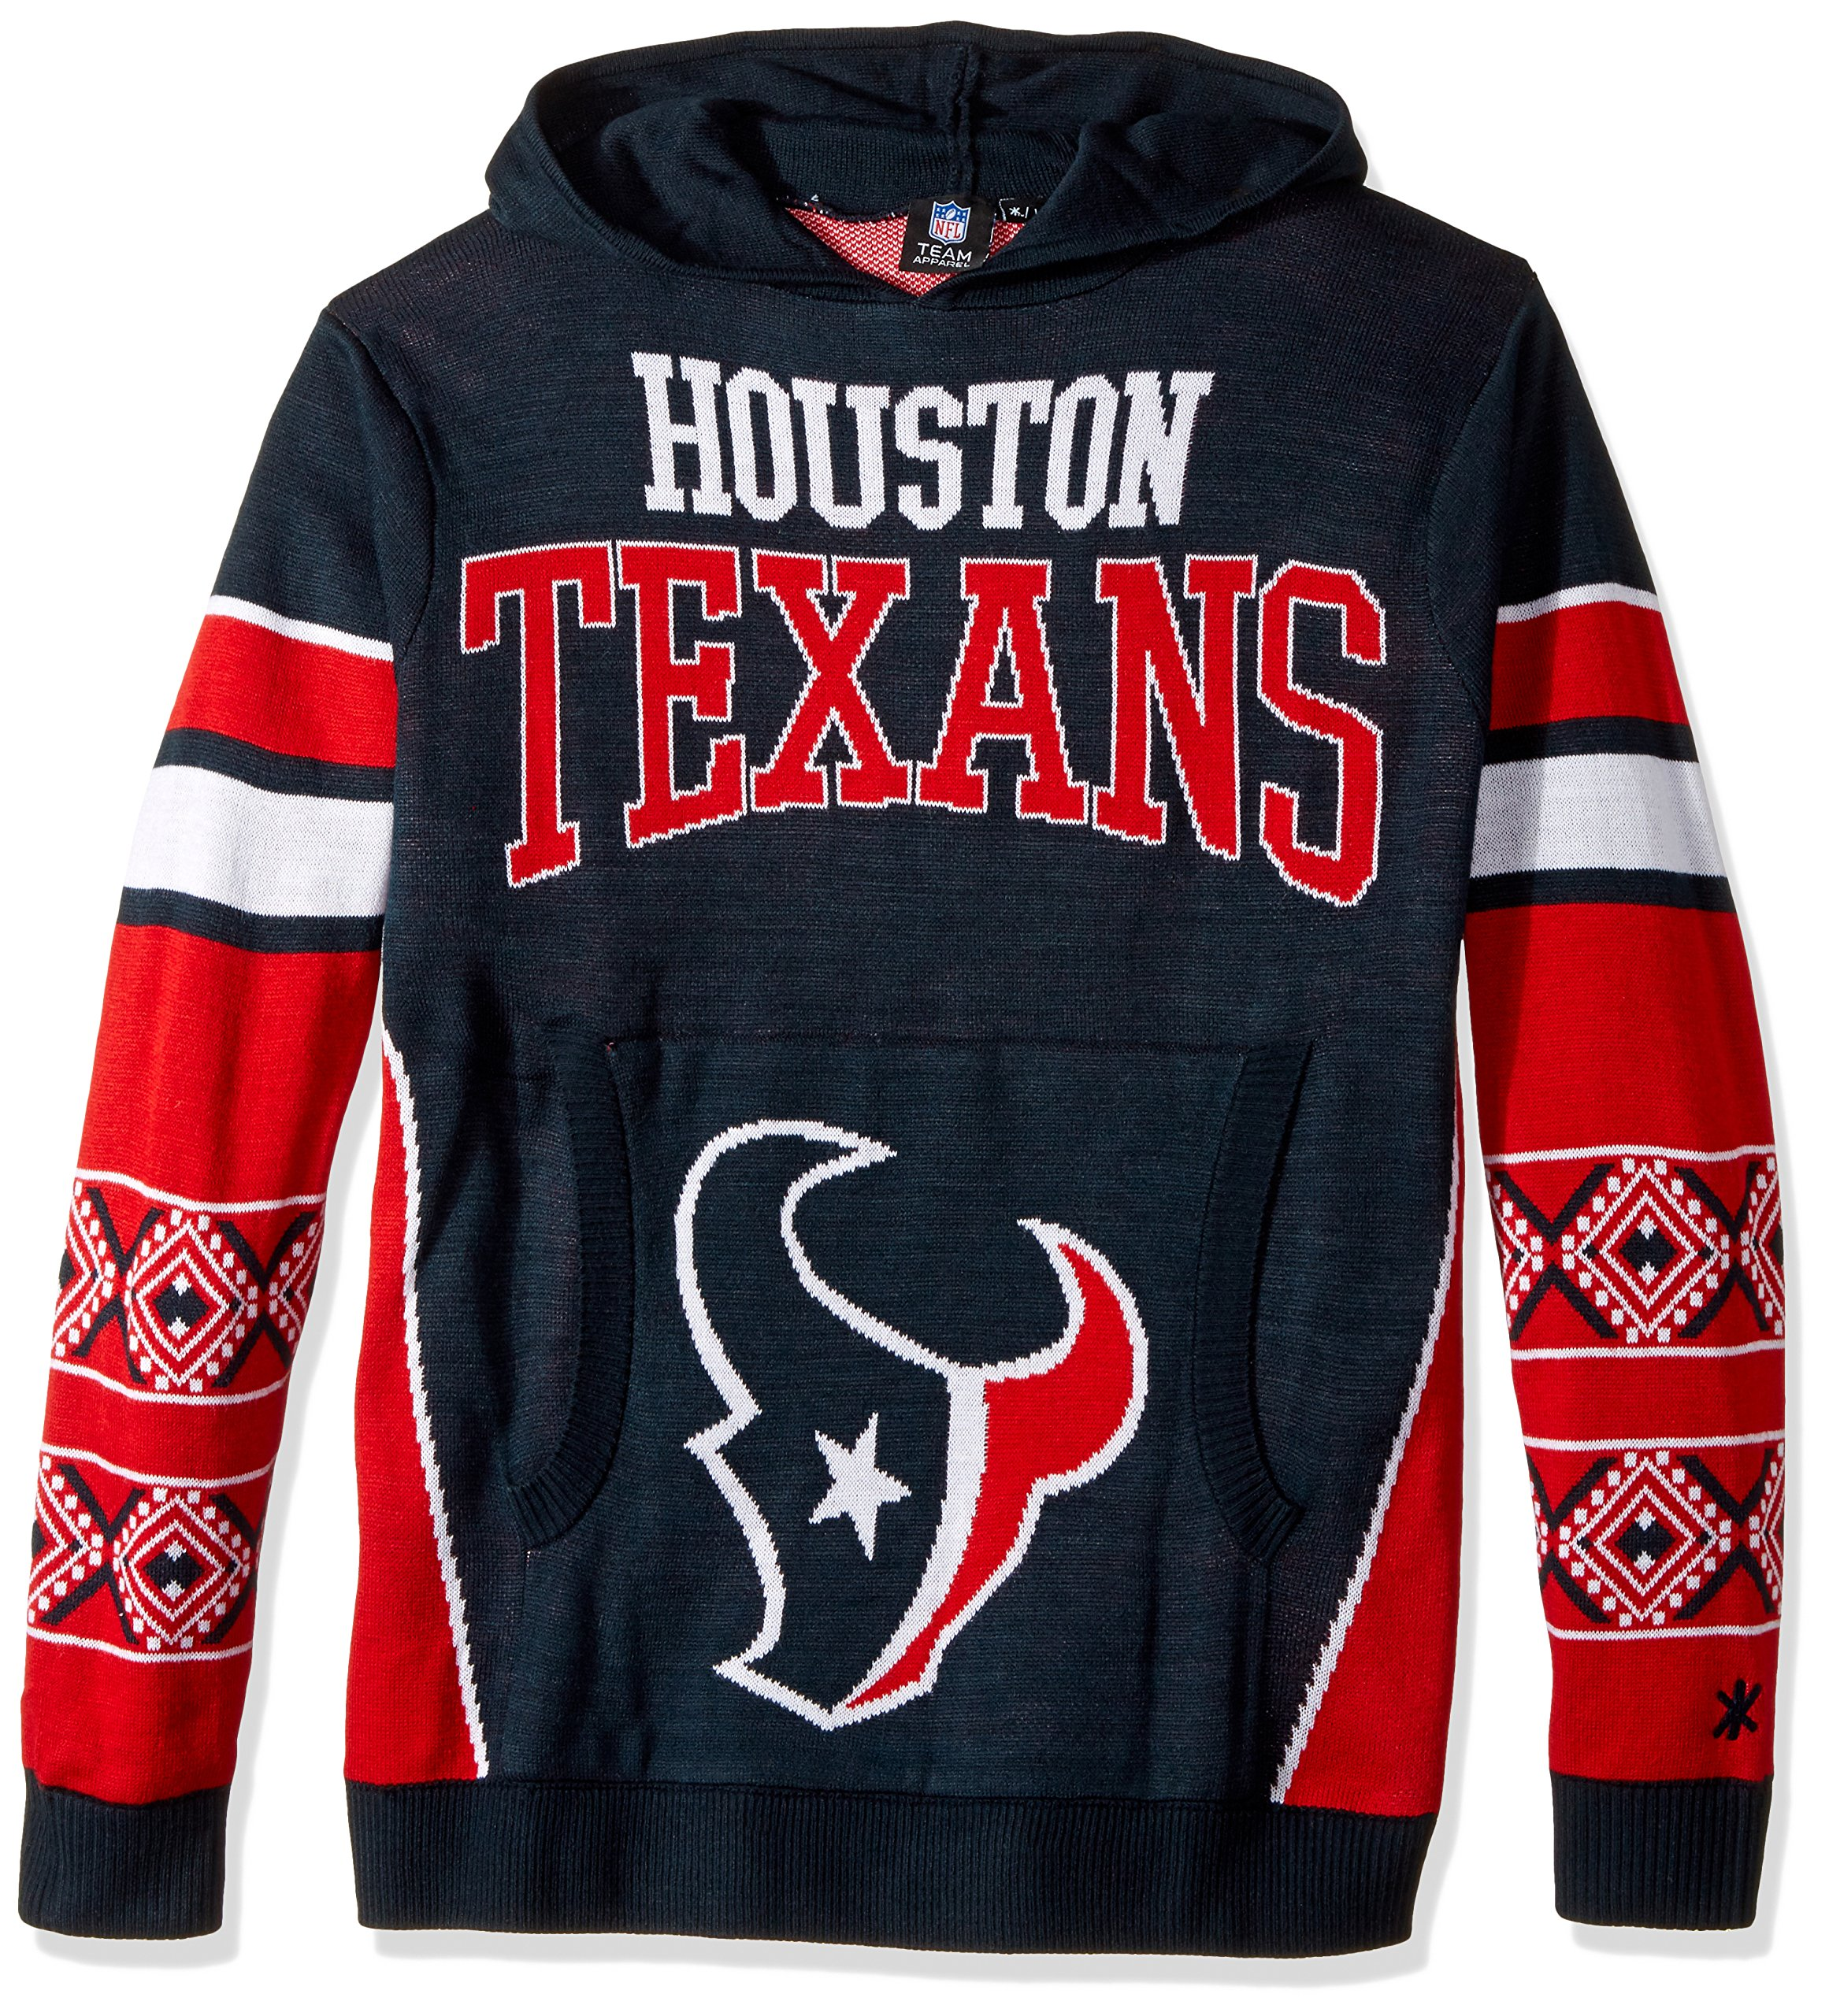 Houston Texans Big Logo Hooded Sweater Extra Large